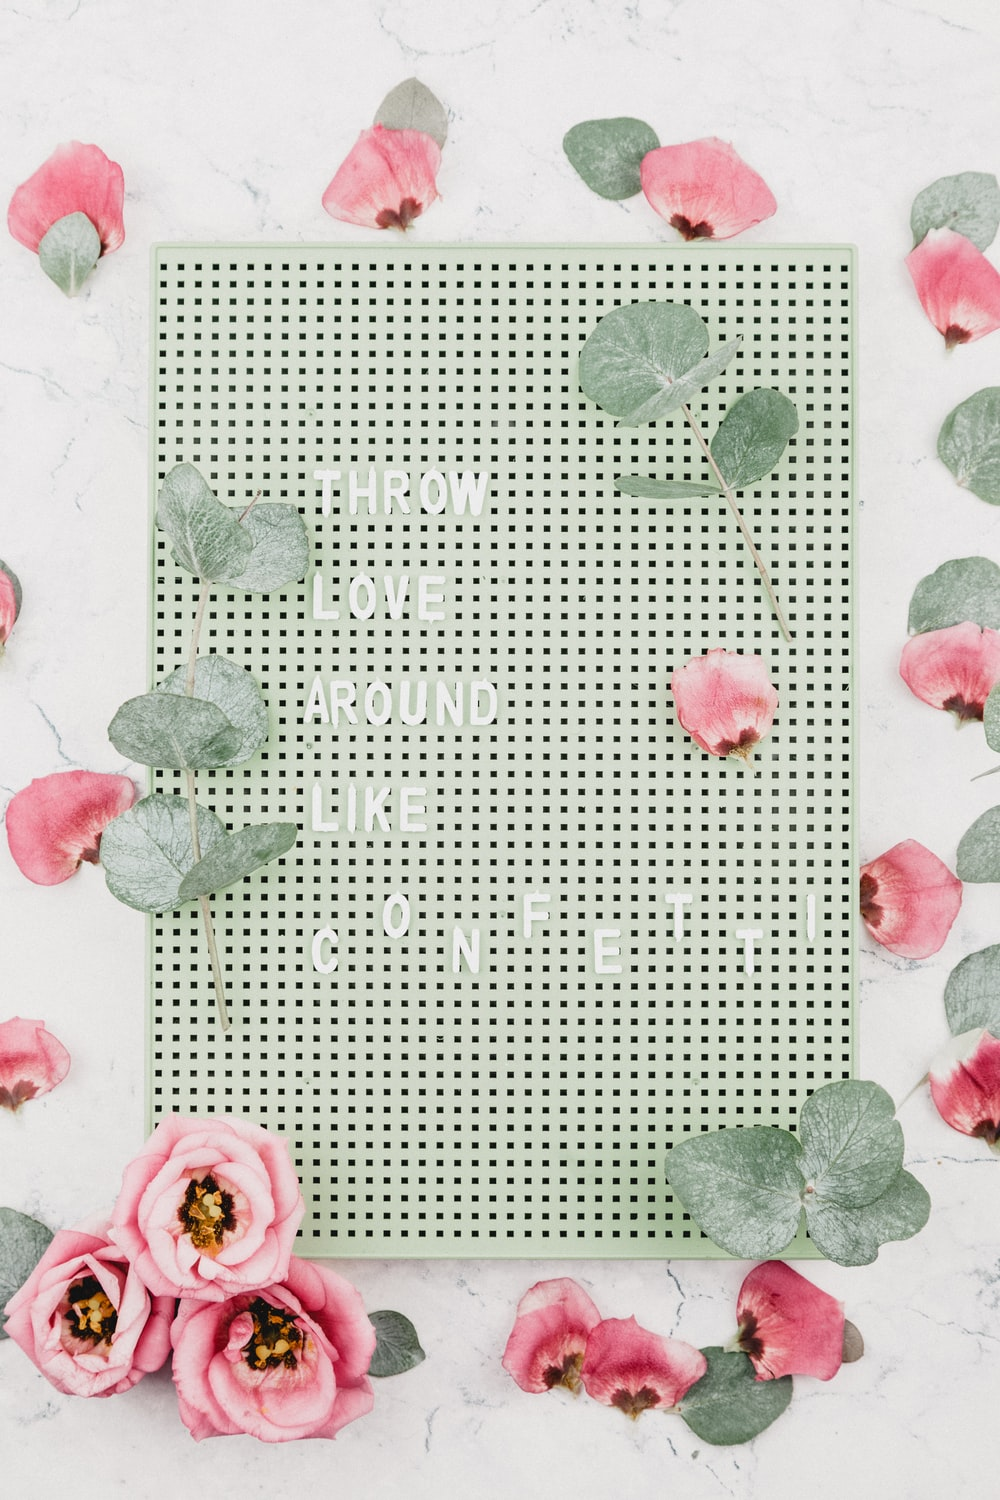 throw love around like confetti text on board surrounded b y flowers